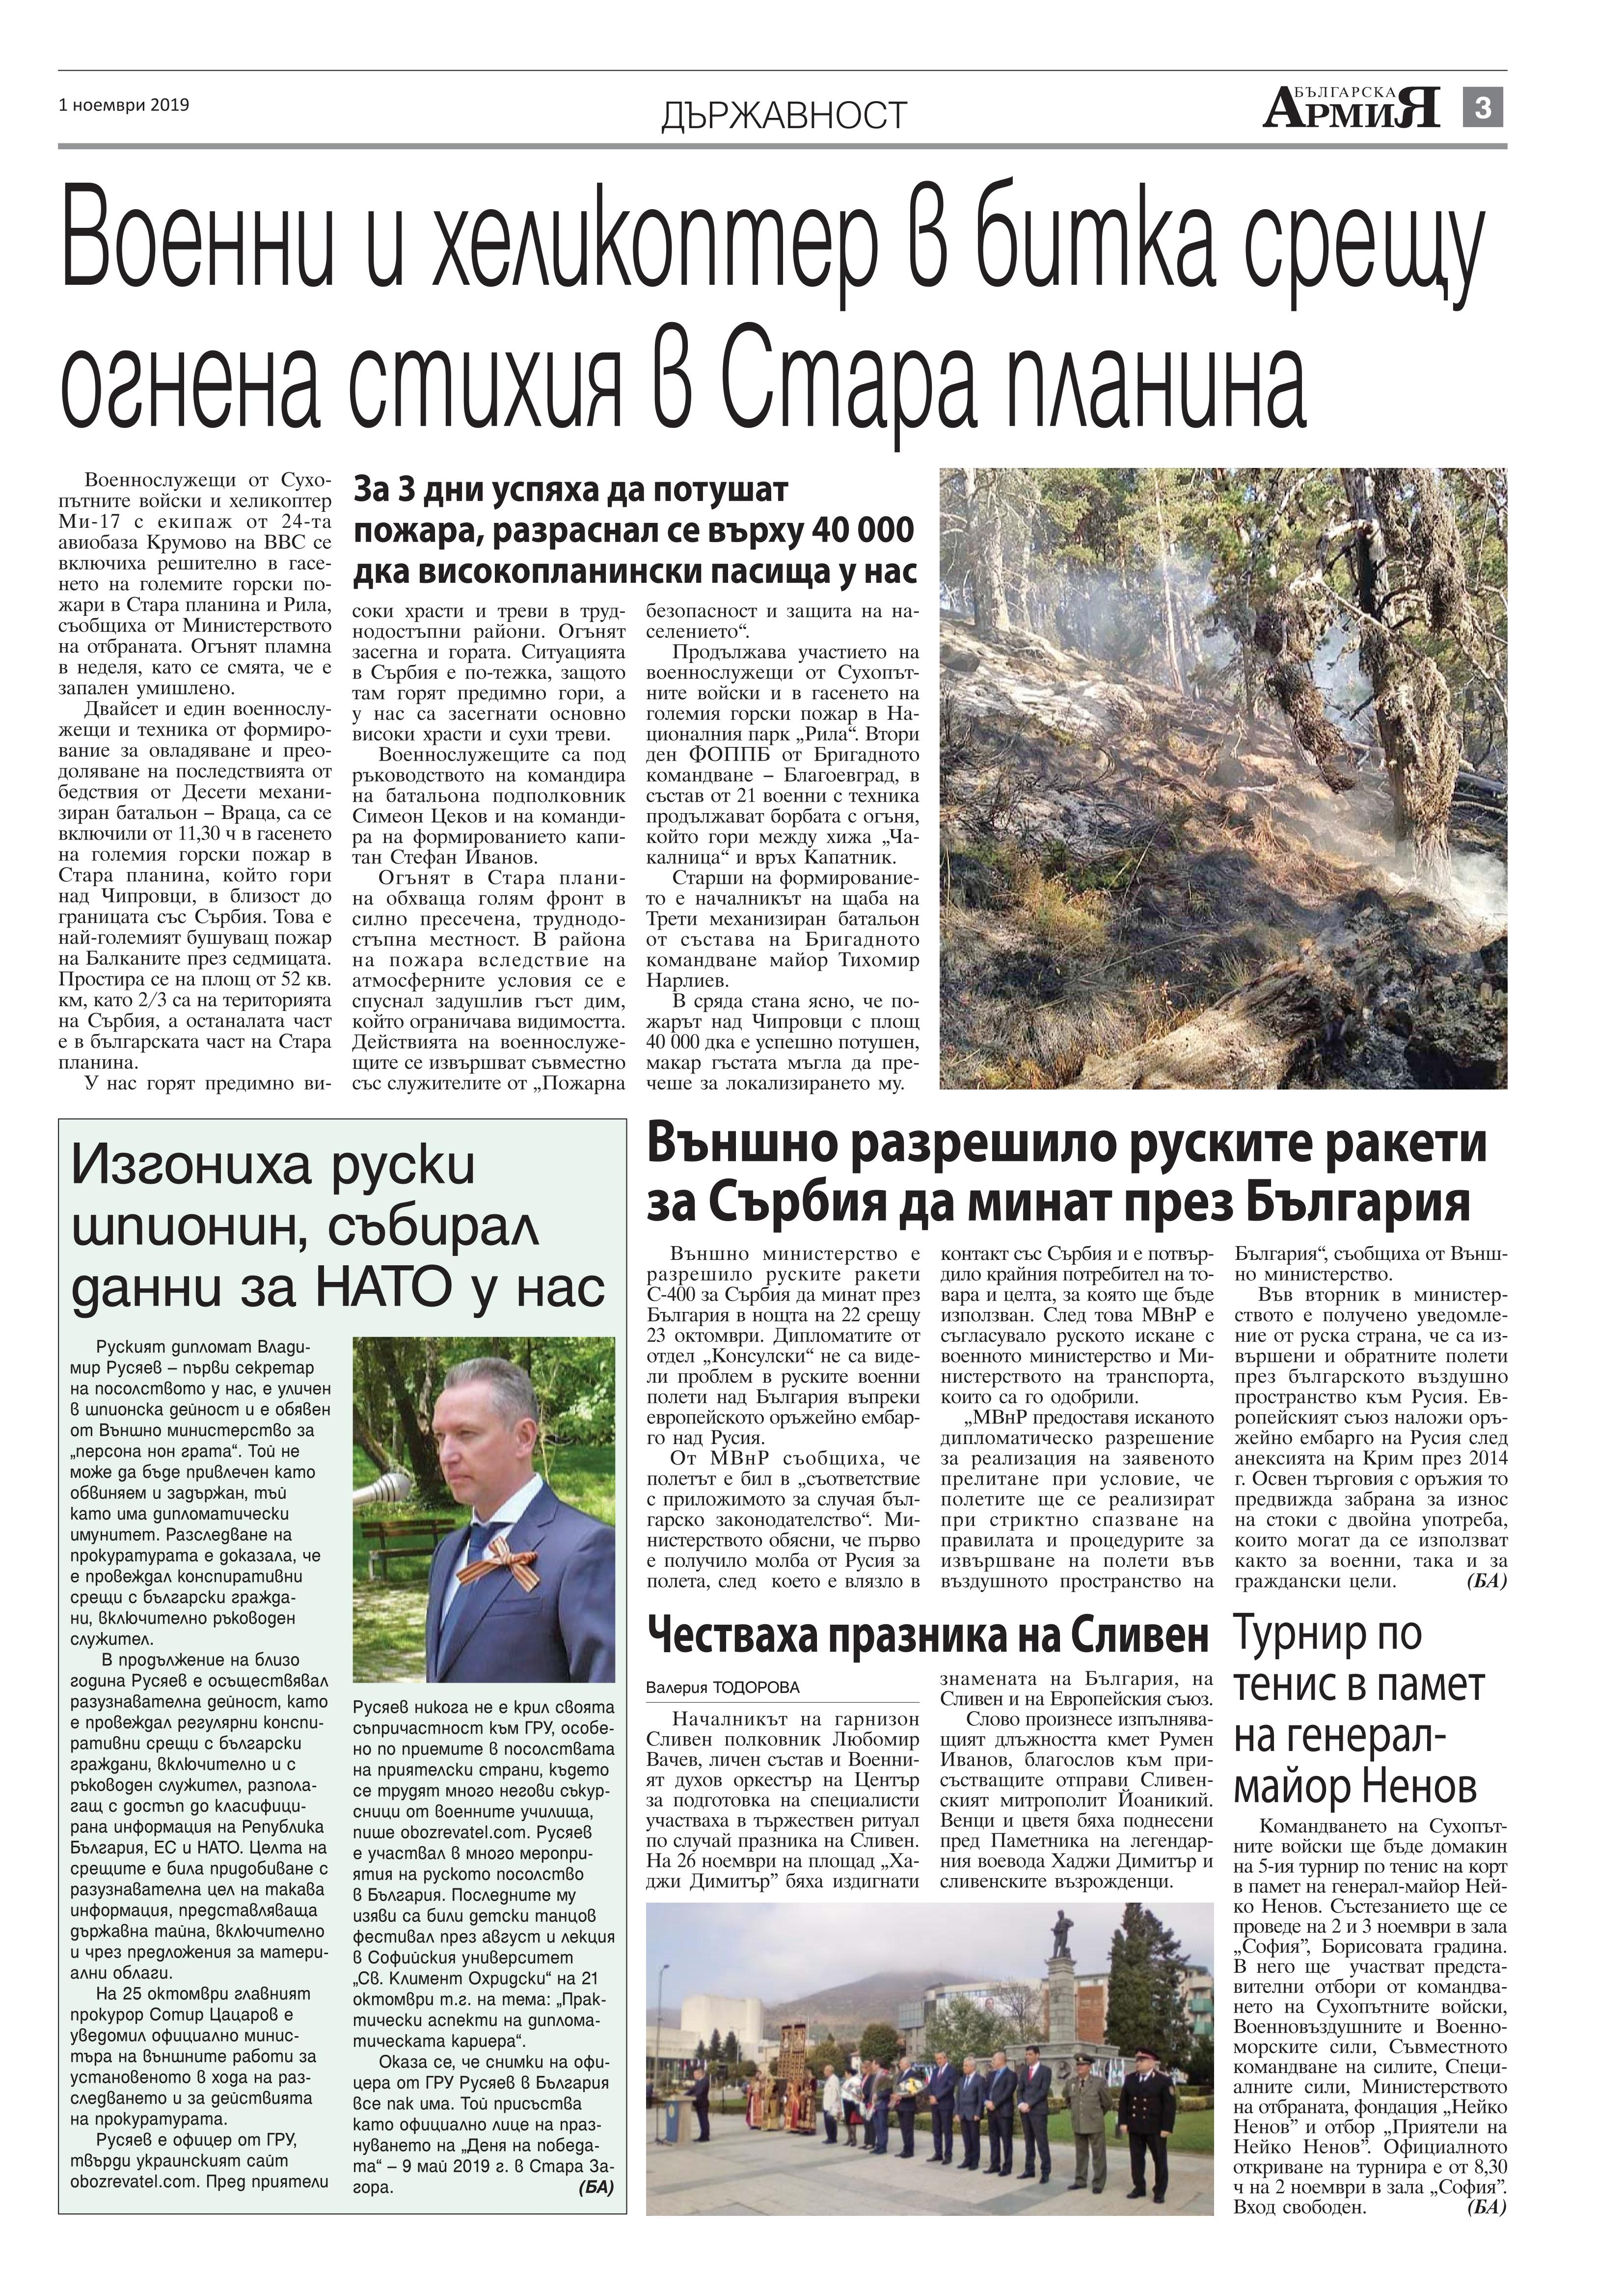 https://www.armymedia.bg/wp-content/uploads/2015/06/03.page1_-111.jpg